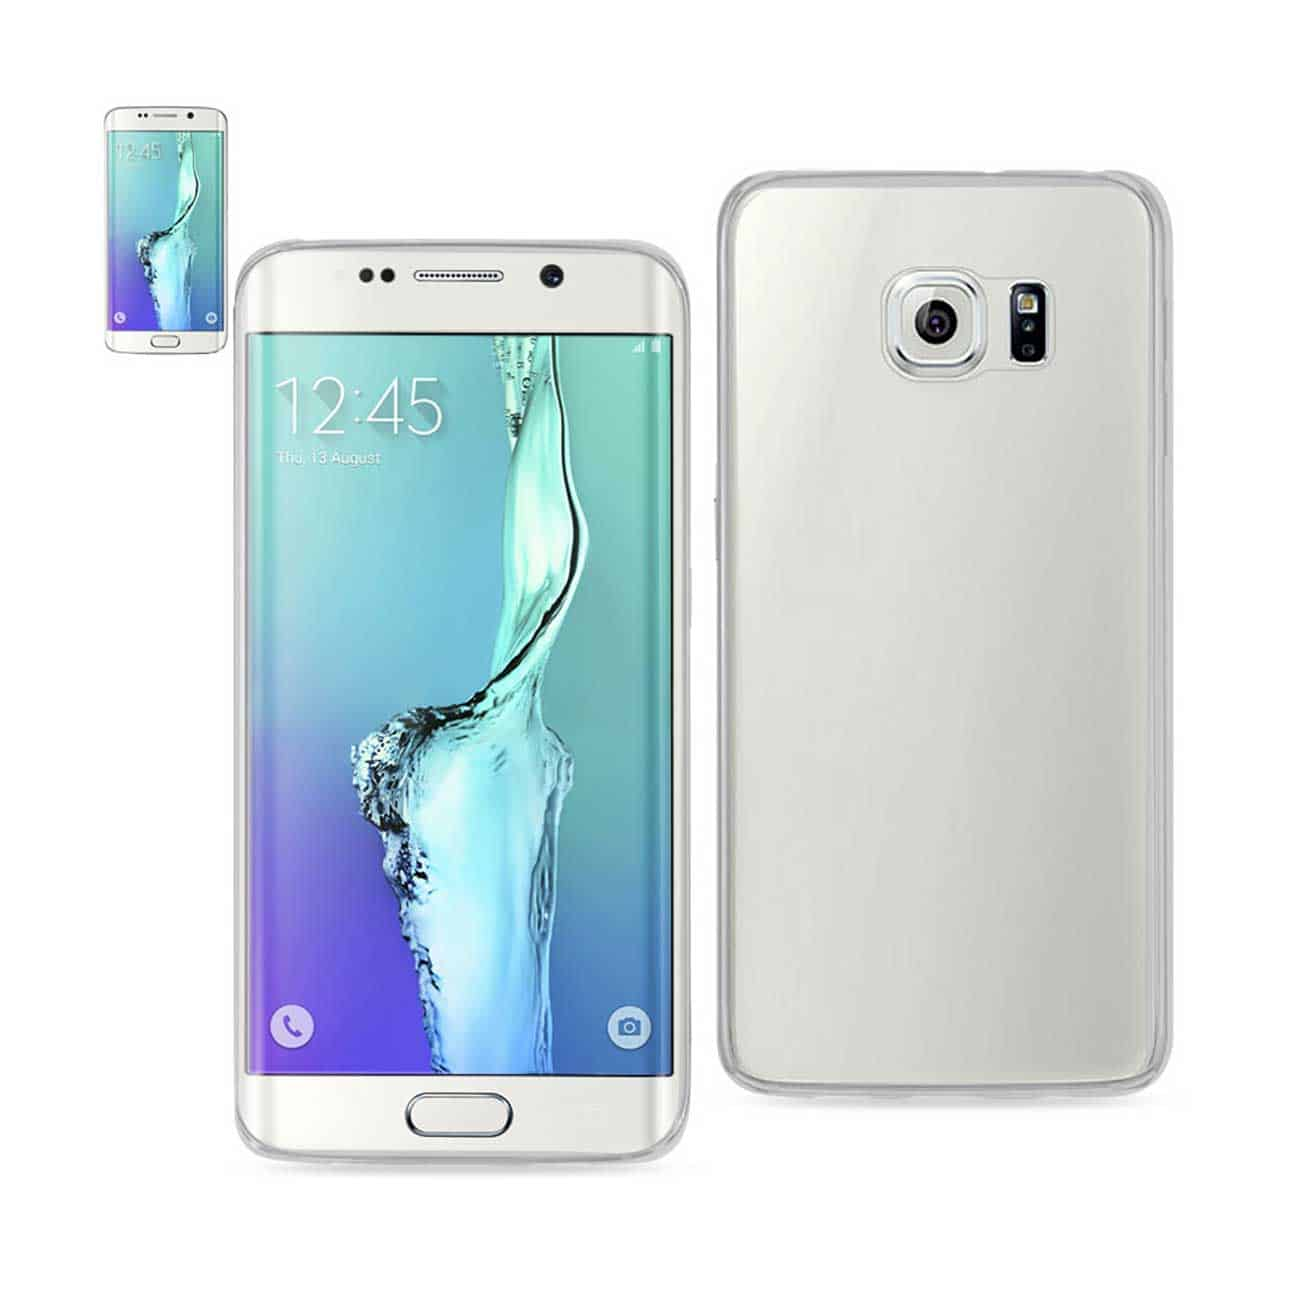 SAMSUNG GALAXY S6 EDGE PLUS CLEAR BACK FRAME BUMPER CASE IN CLEAR